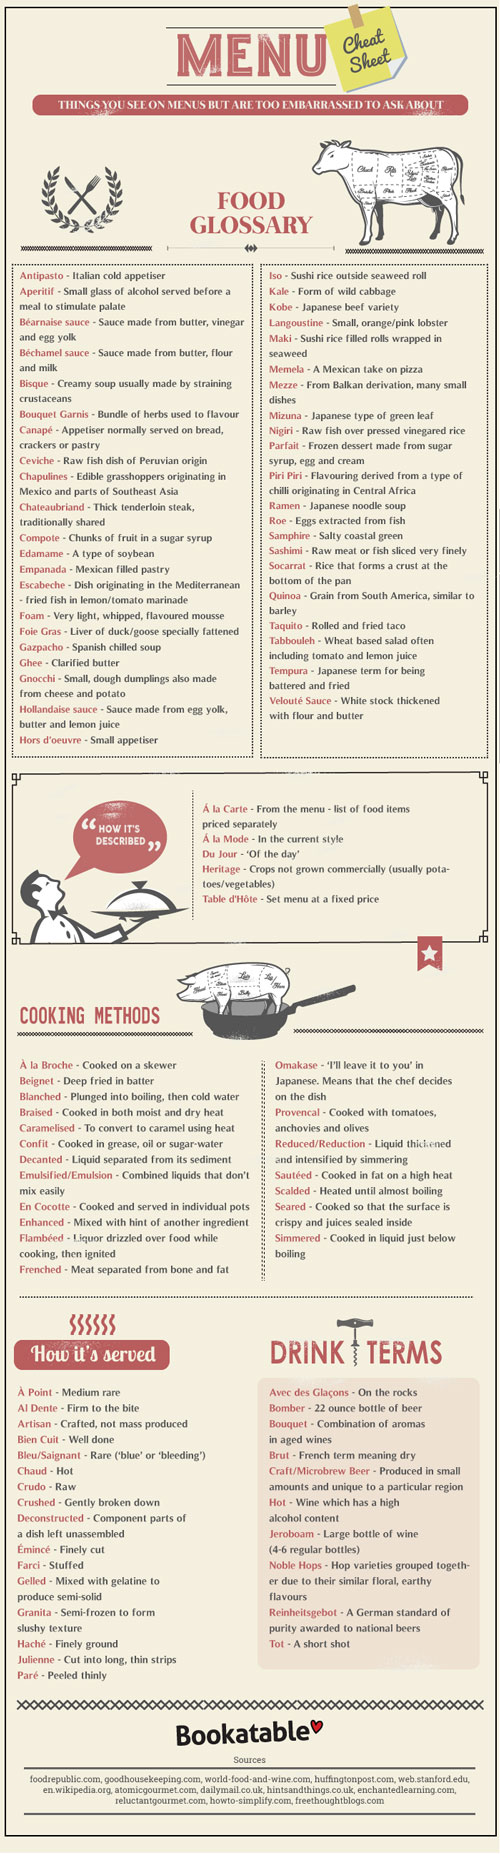 menu-cheat-sheet